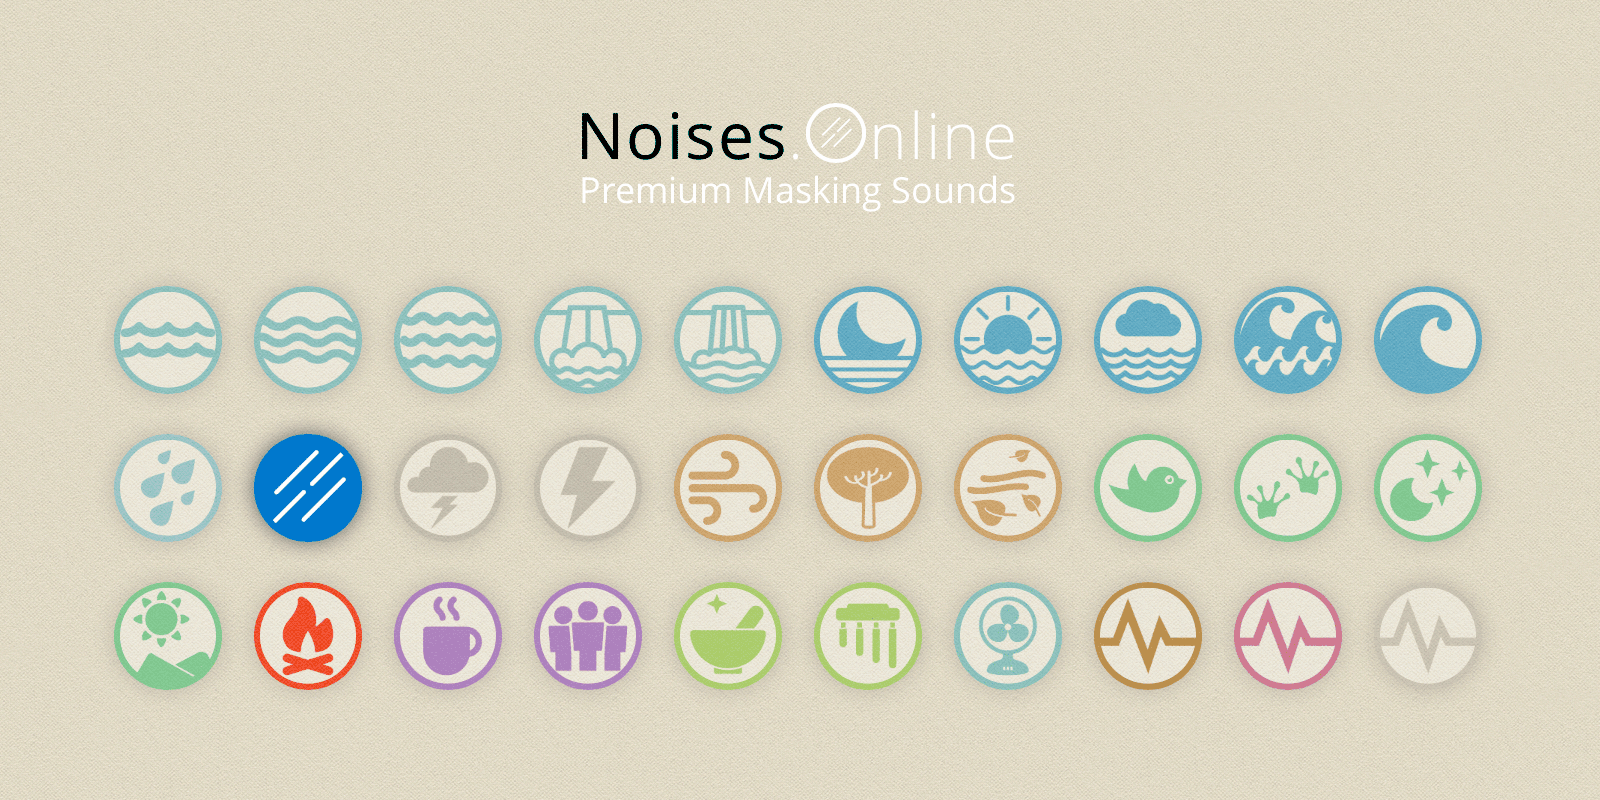 online background noises relaxing sounds noise masking